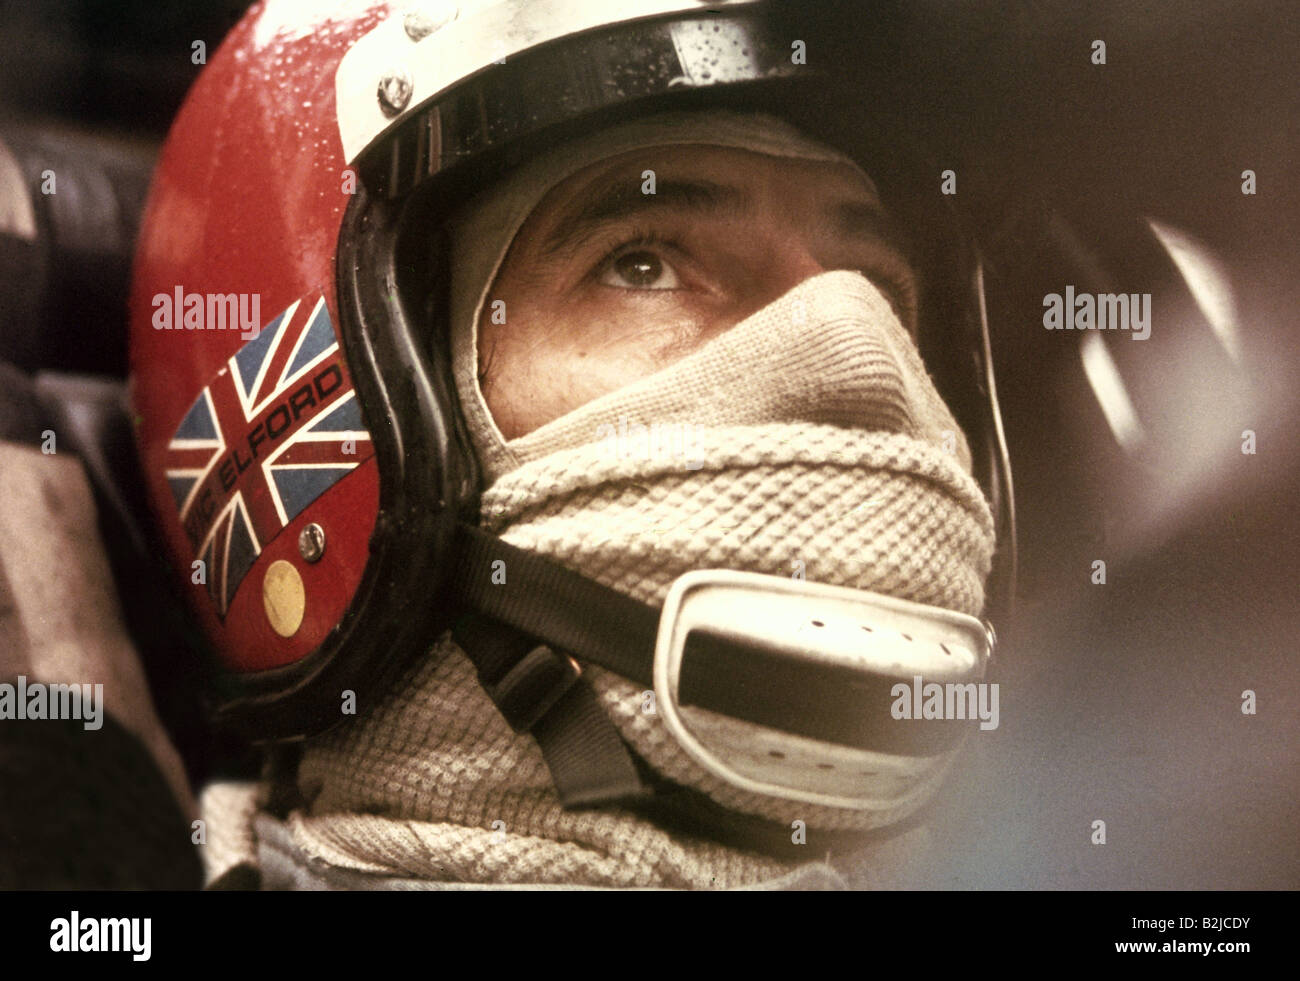 Elford, Vic, * 10.6.1935, Britain athlete, (automobile racer), racing car, Monza, 1971, Additional-Rights-Clearances - Stock Image